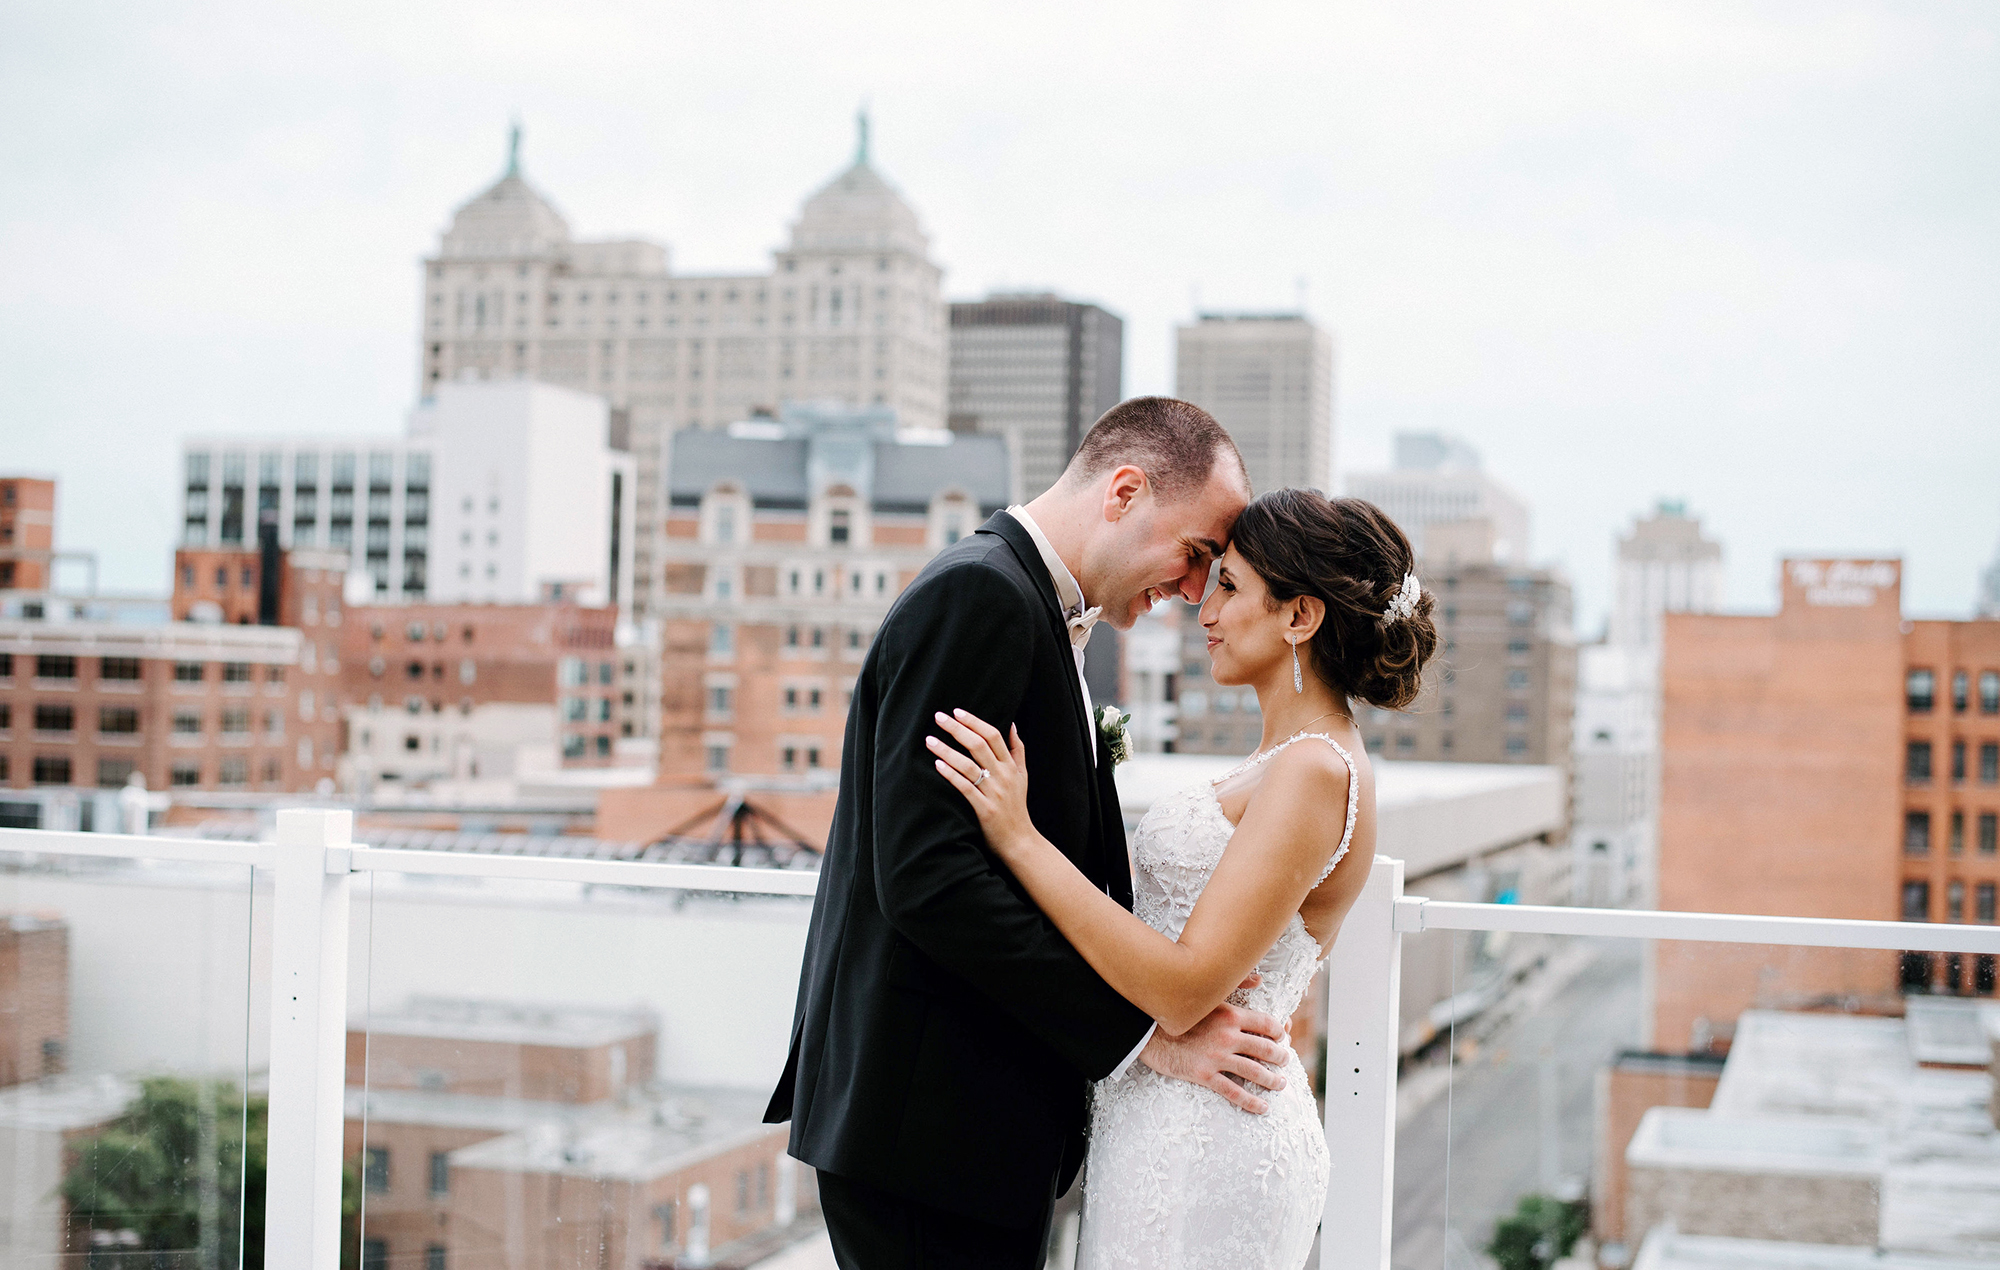 WNY Wedding: Planning around residencies | Buffalo Magazine